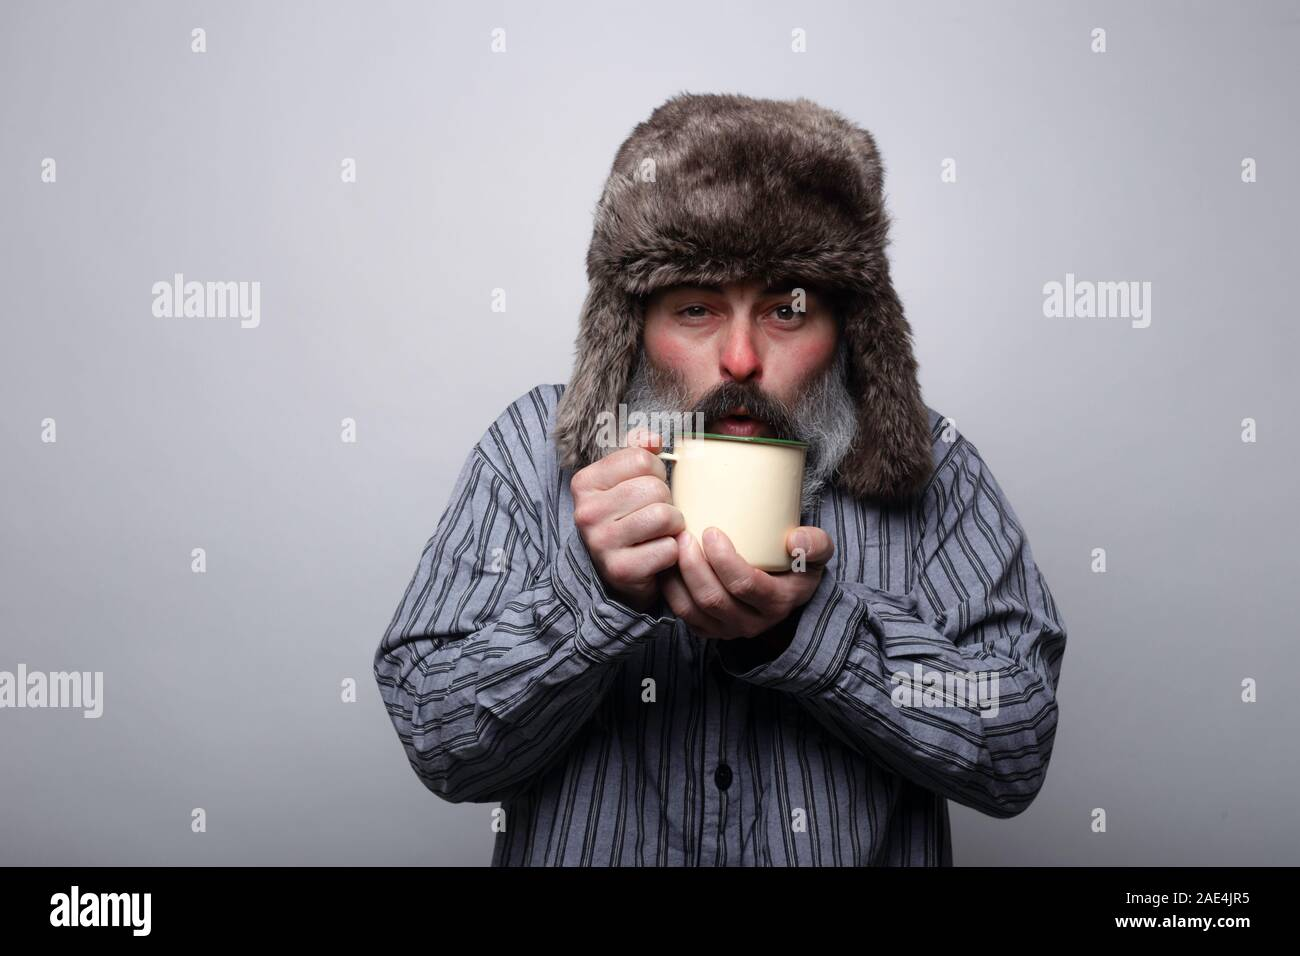 Sick man with pajamas and with a cap blowing a cup of hot tea on a gray background Stock Photo